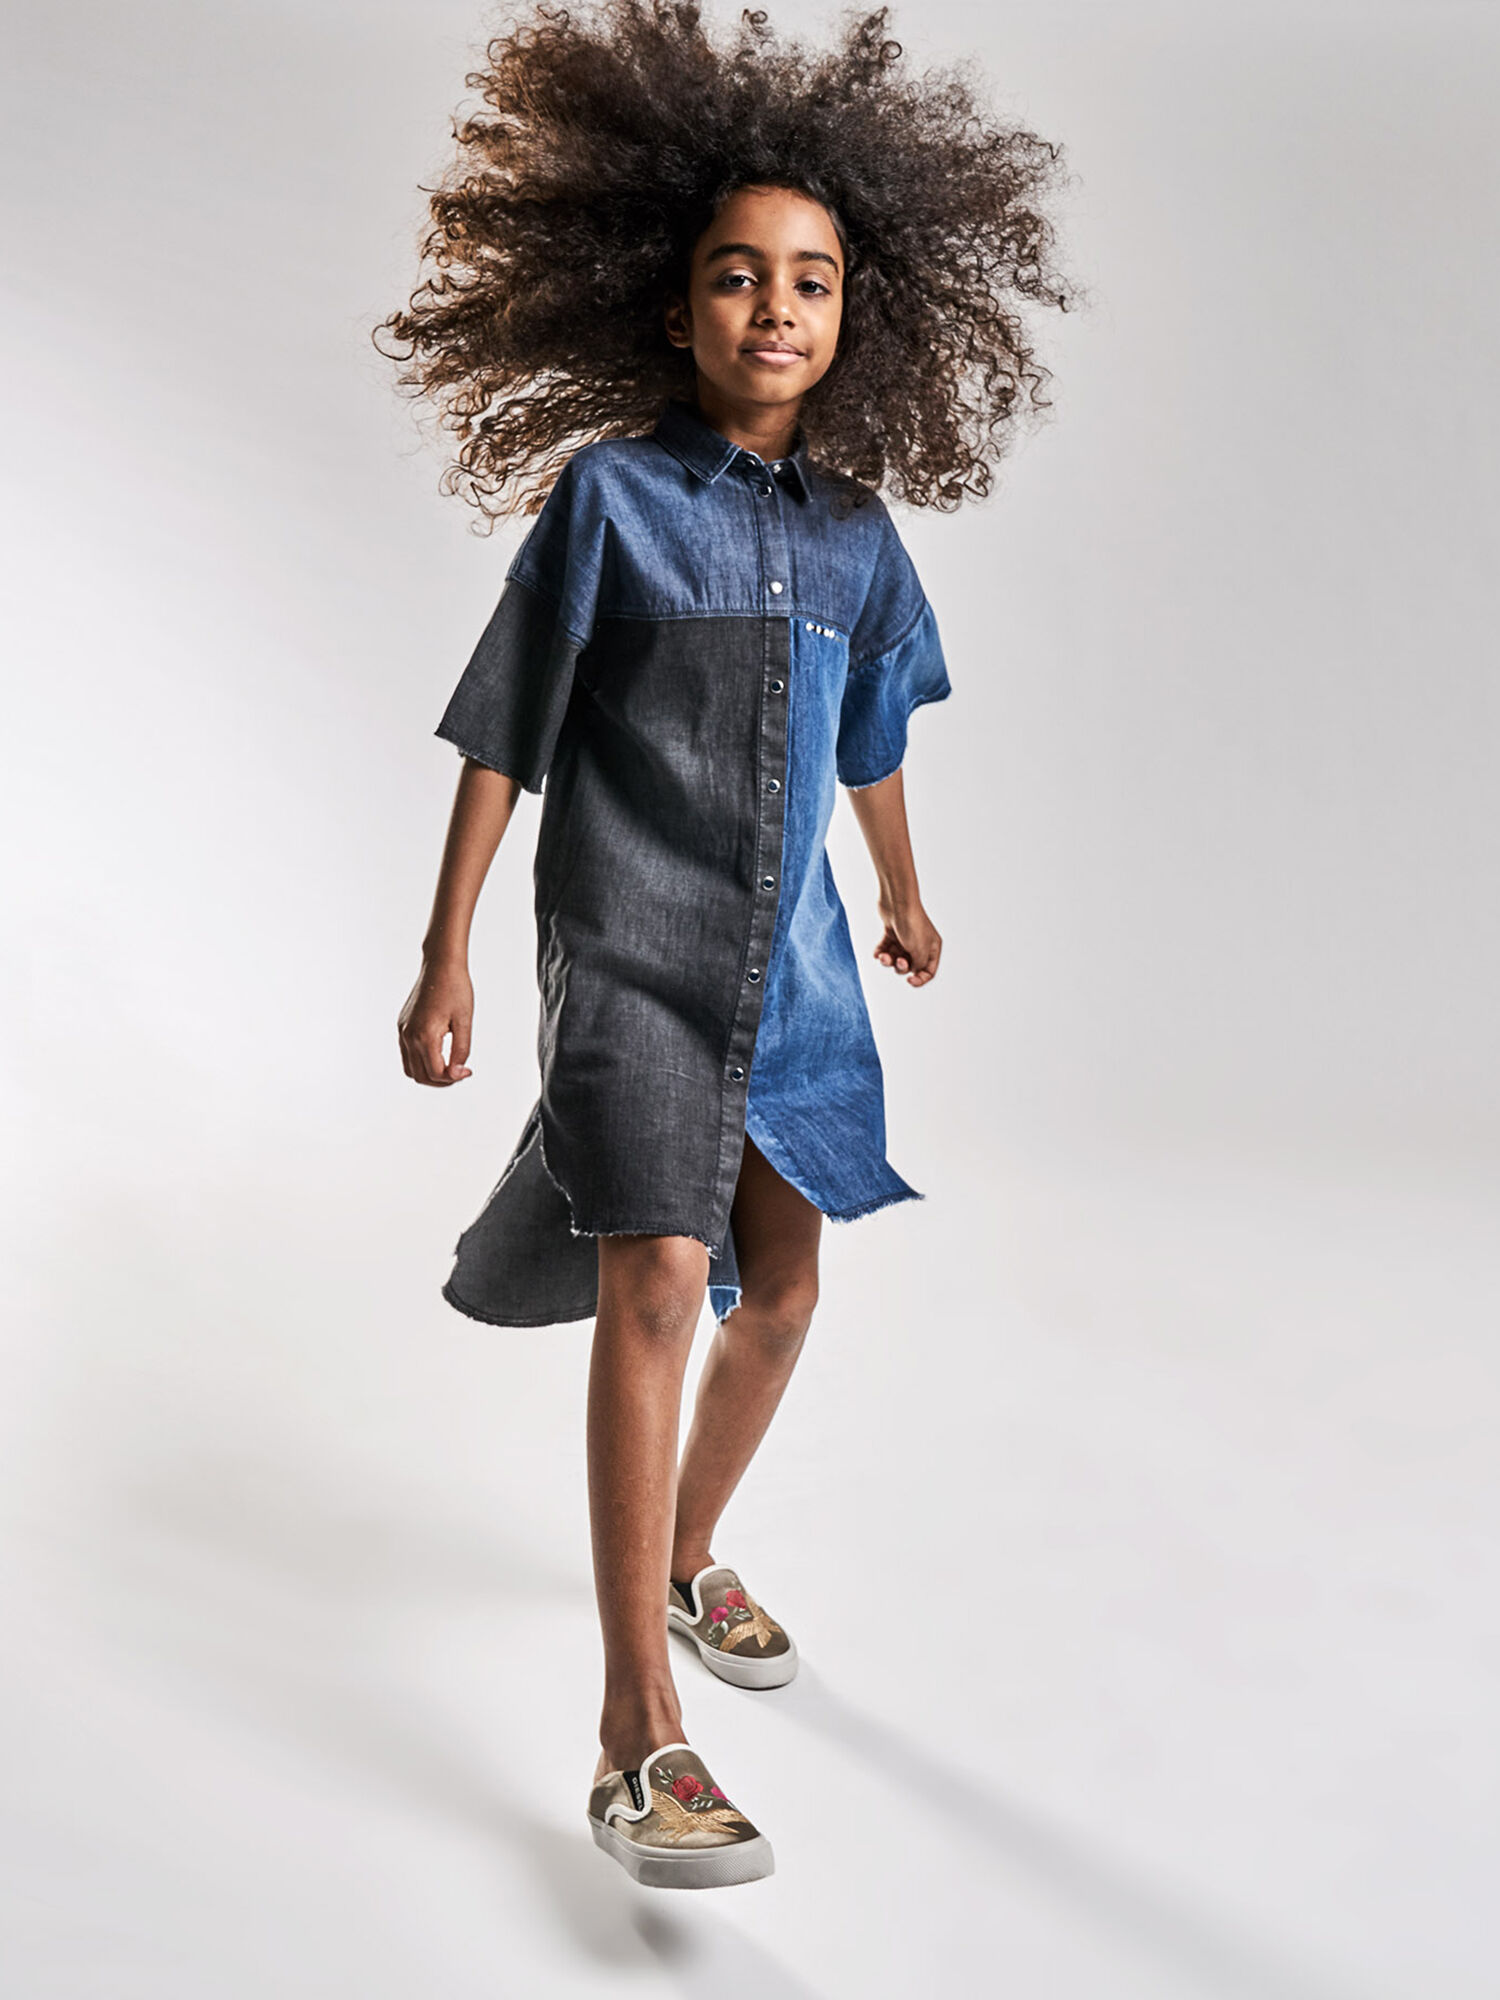 Juniors Clothing Stores for Girls